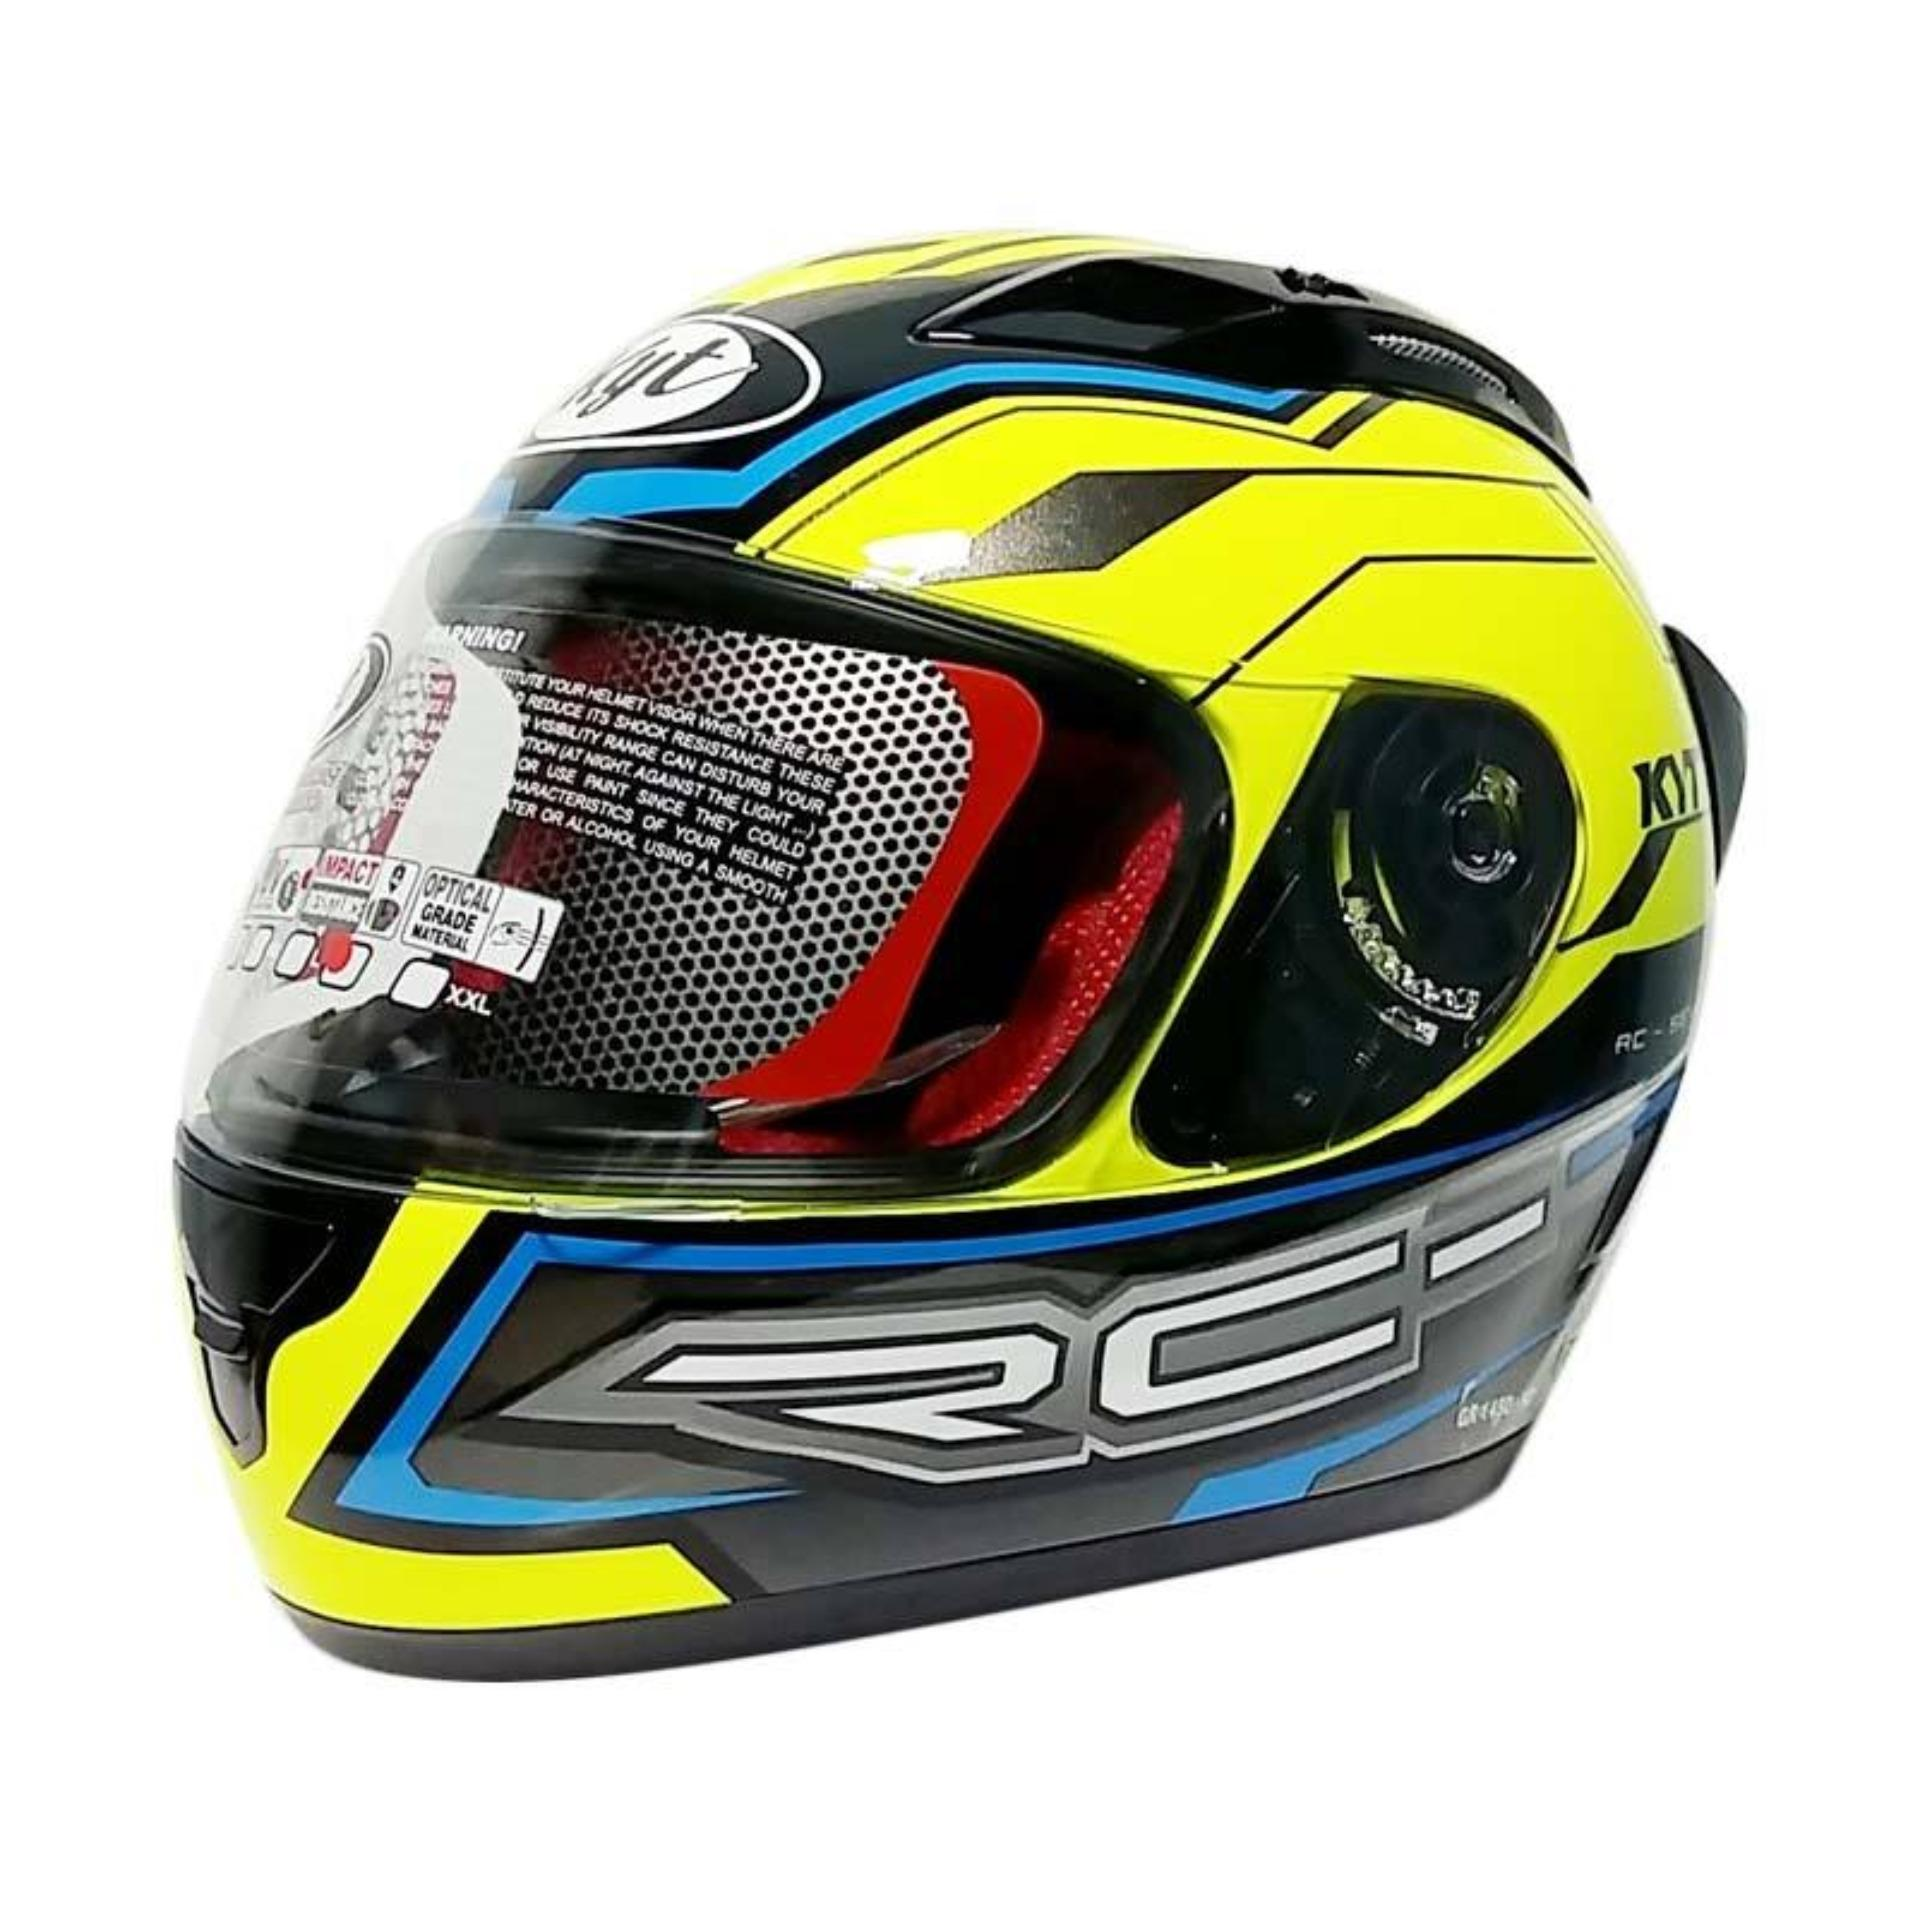 Toko Kyt Rc Seven 14 Helm Full Face Yellow Blue Black Di Indonesia